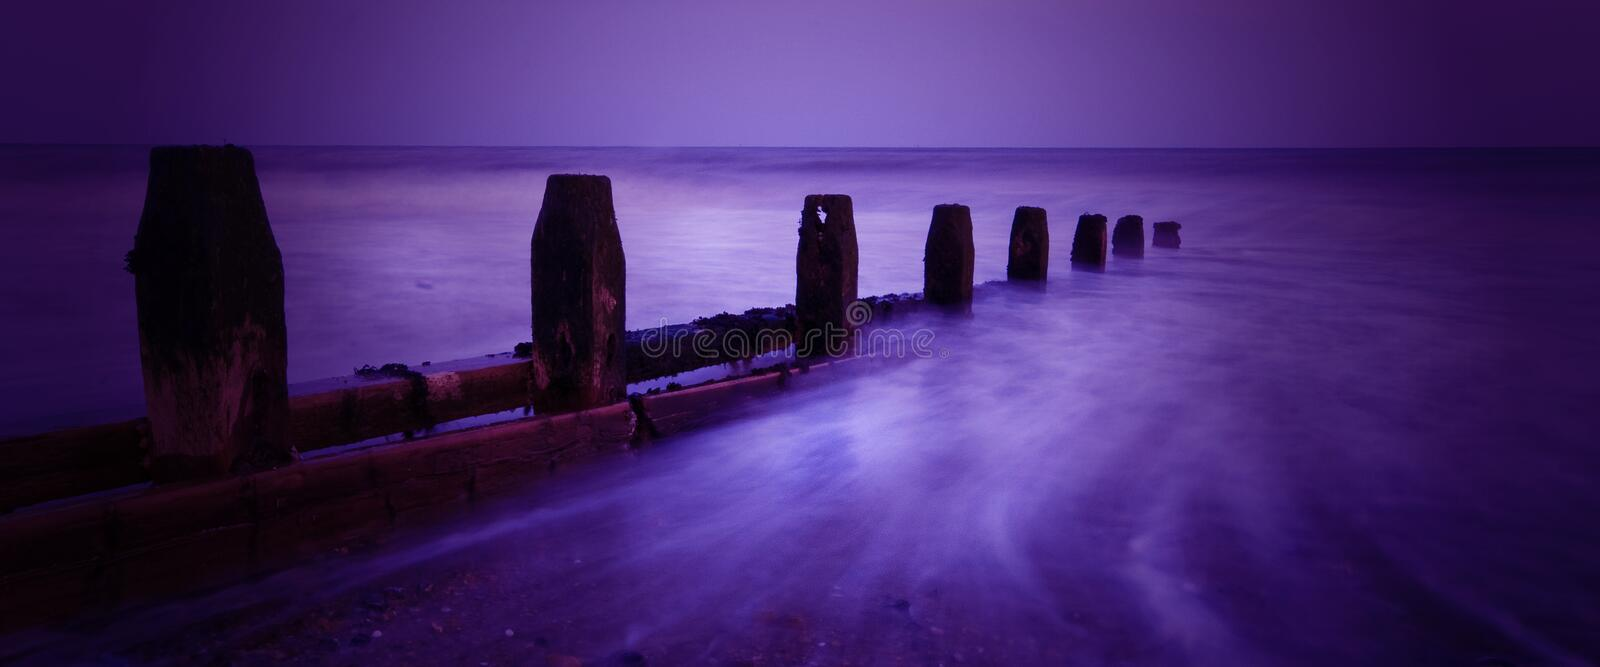 Download Worthing Beach stock image. Image of groin, purple, waves - 4988165